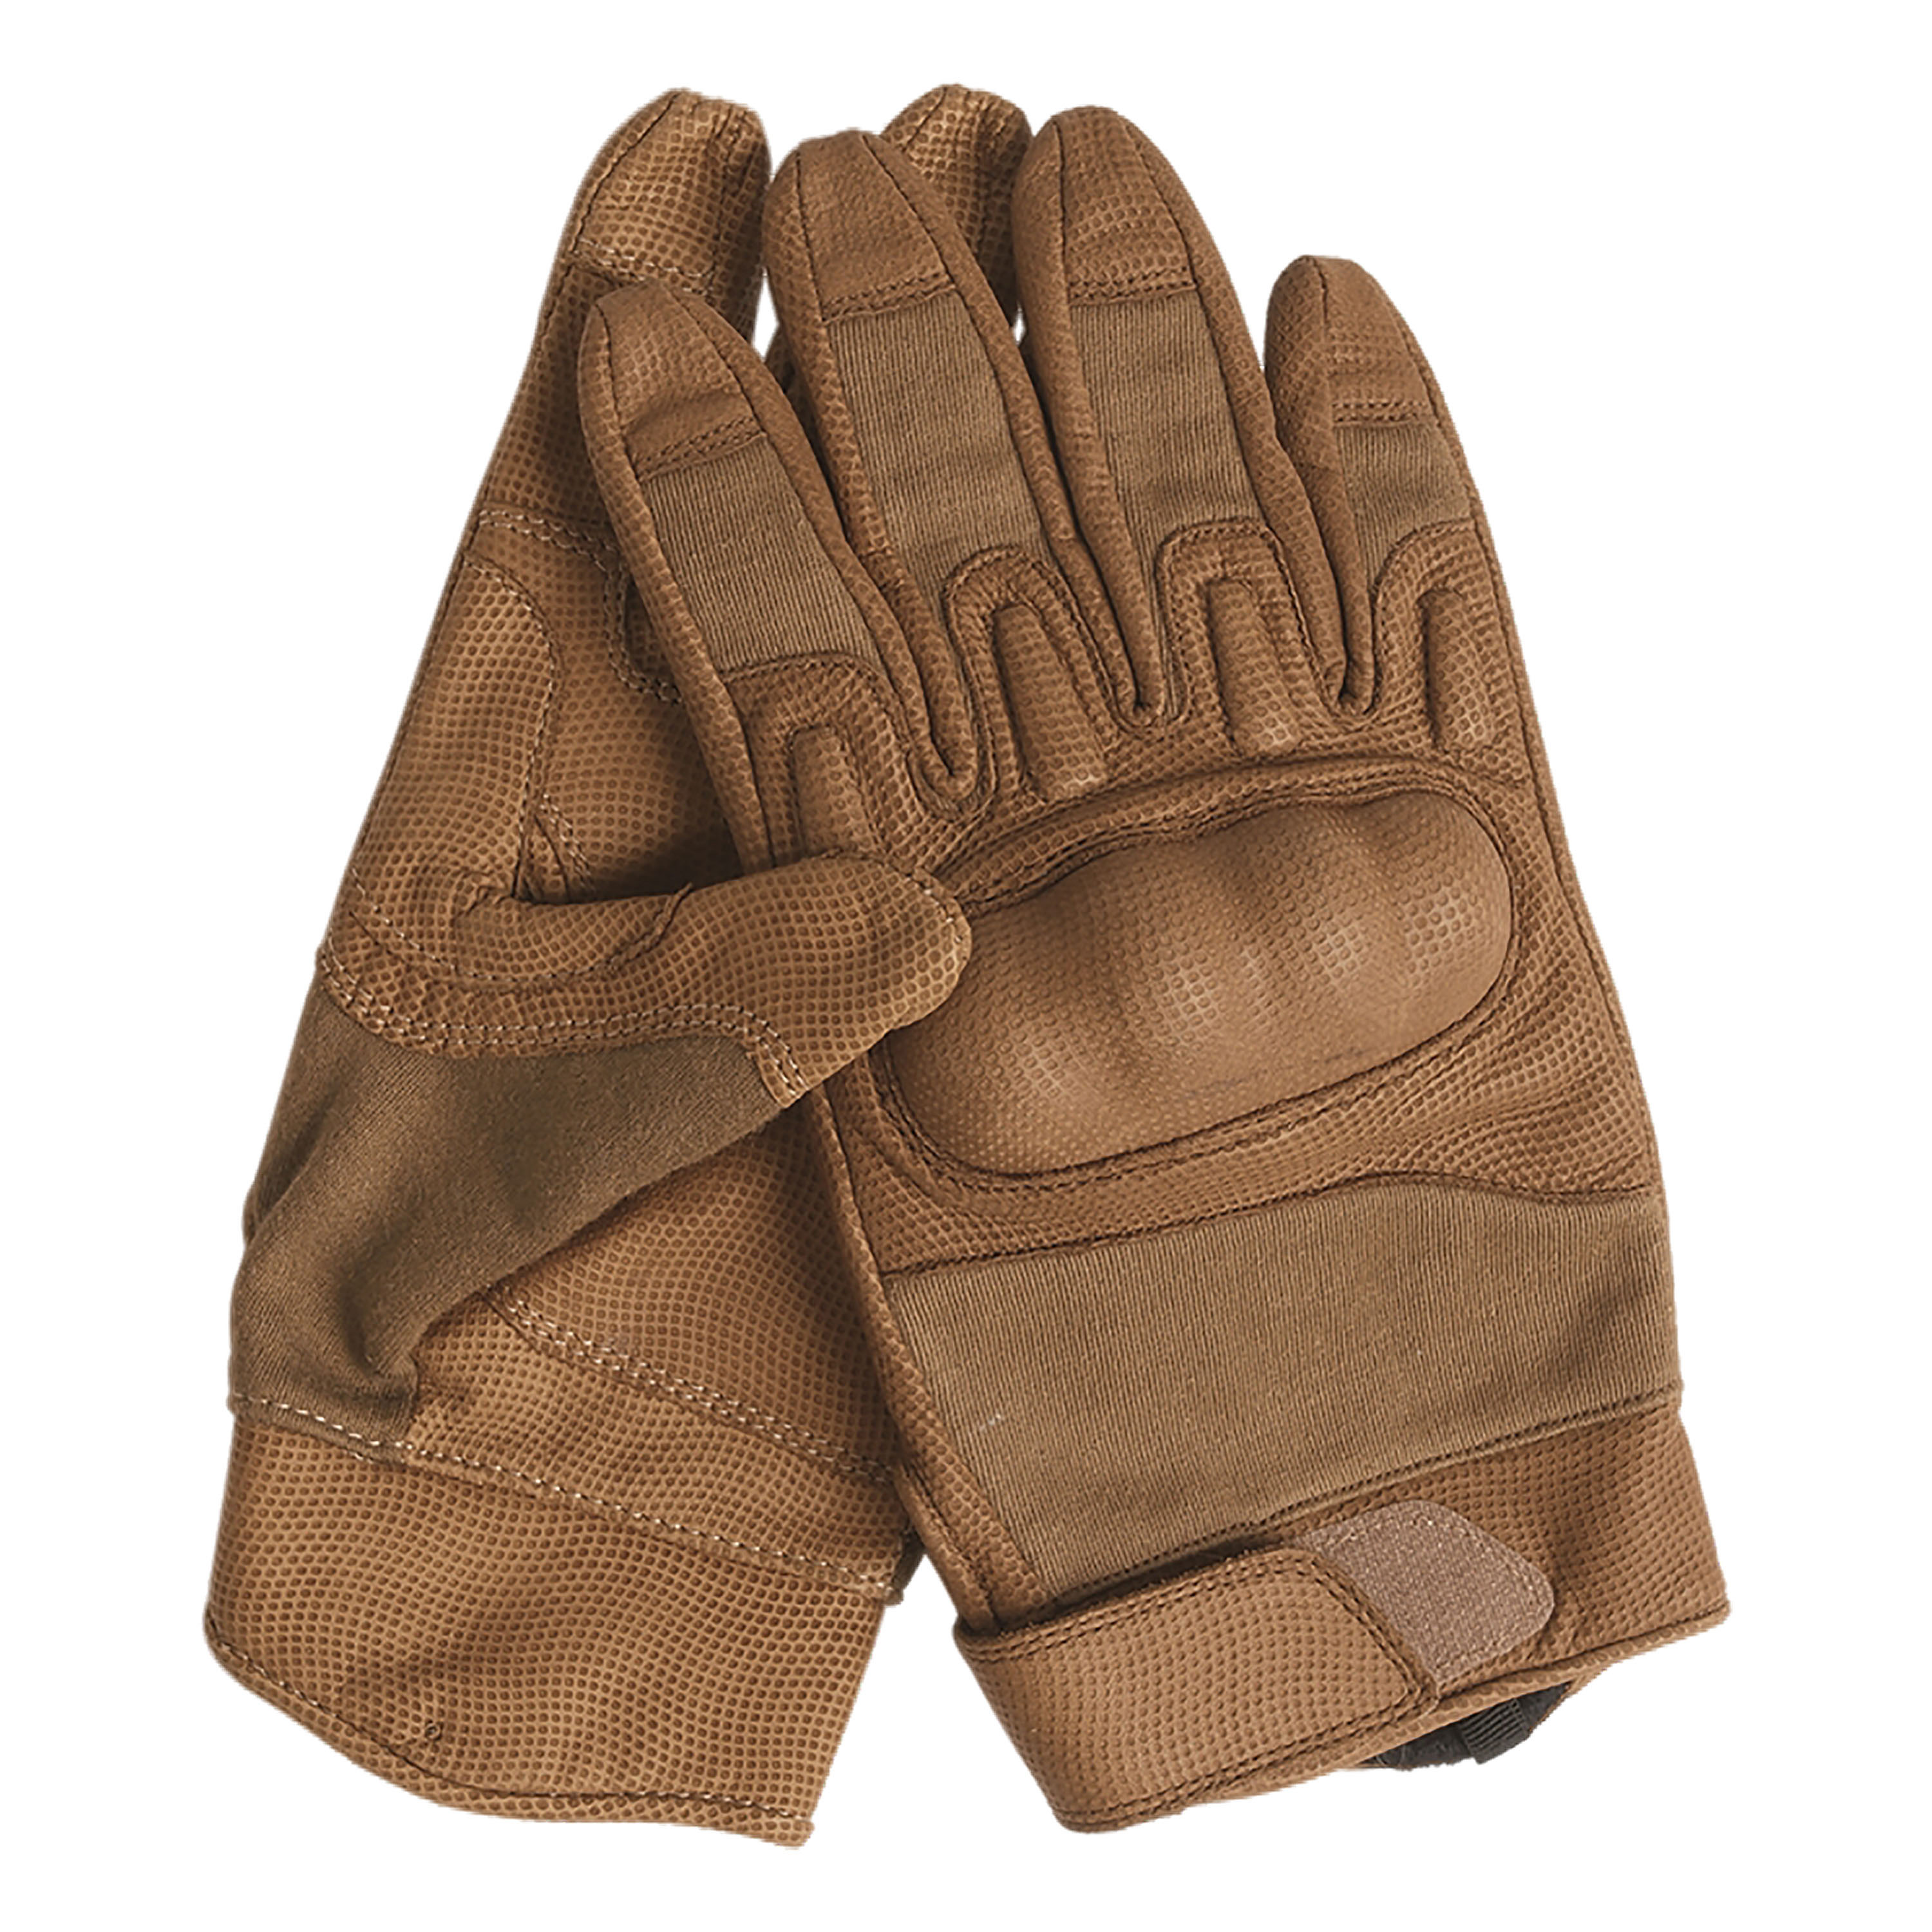 Handschuhe Action Gloves flammhemmend coyote